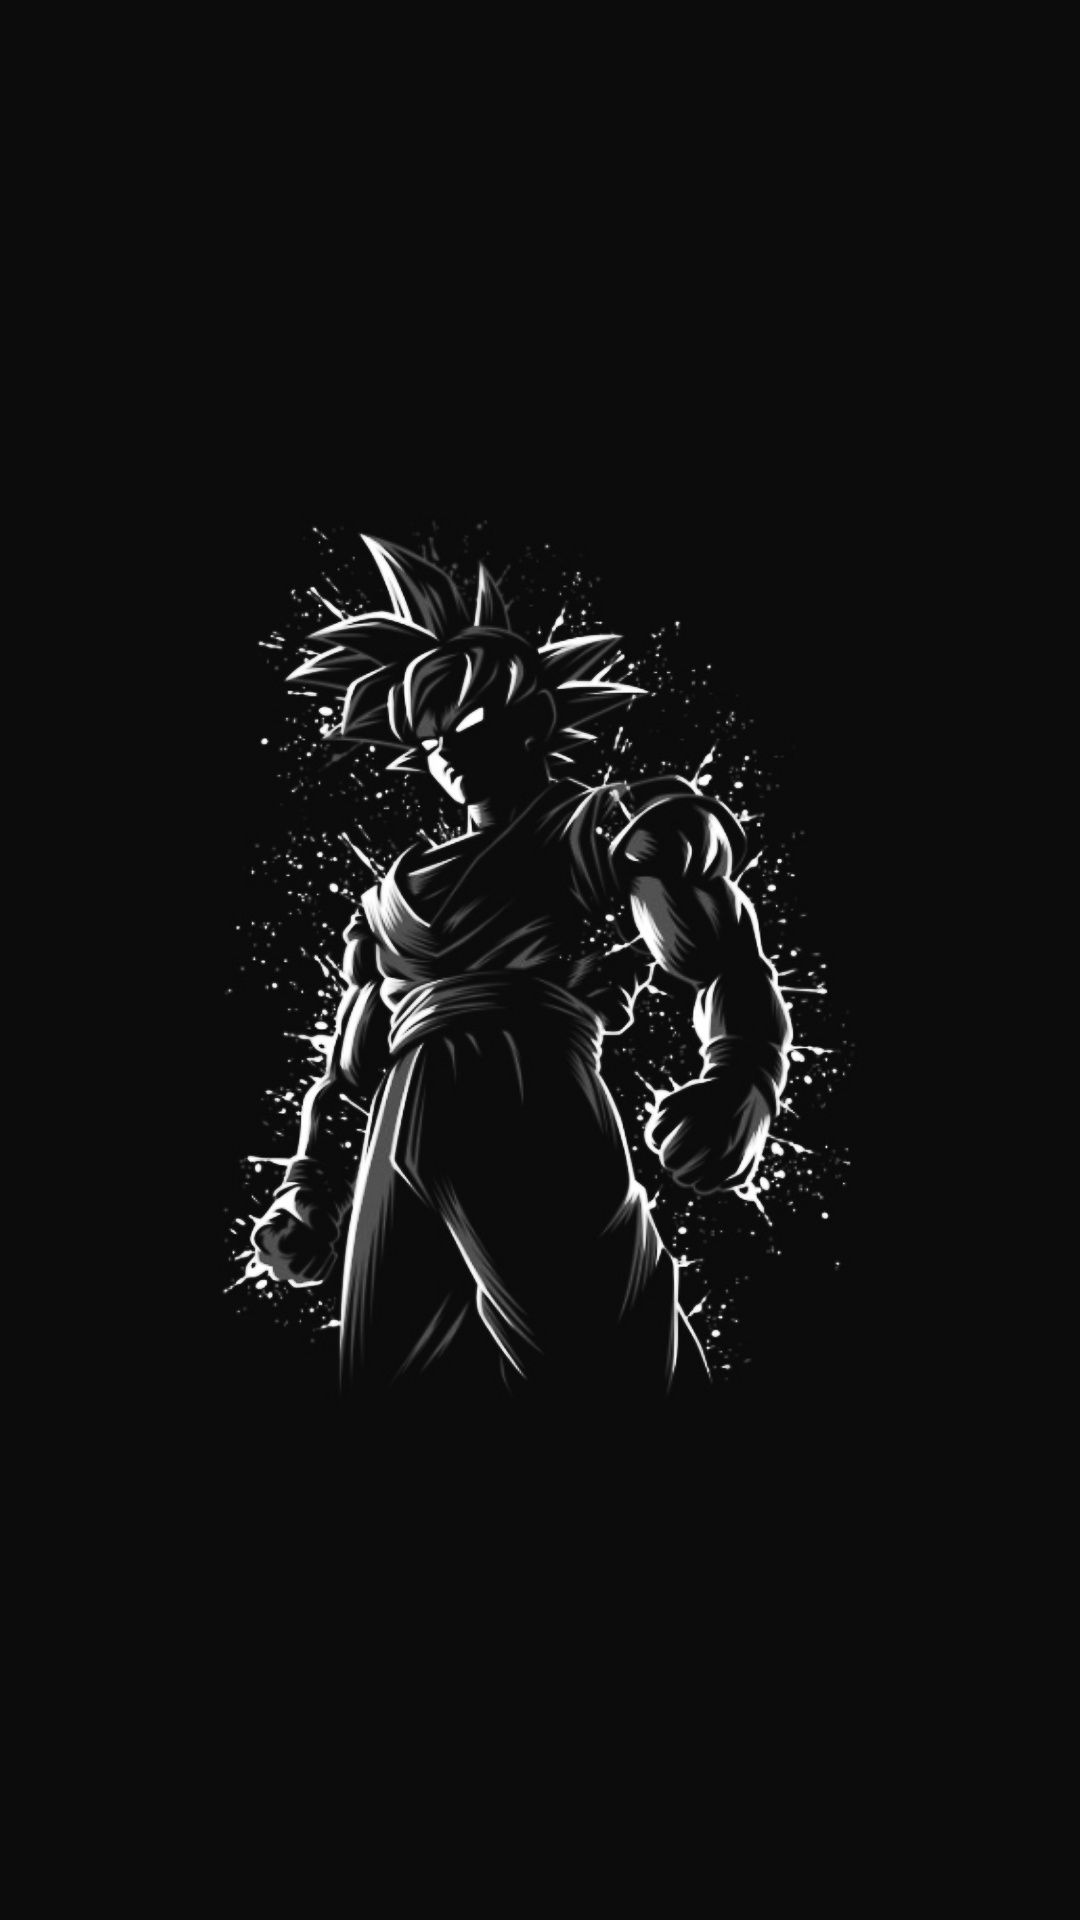 Amoled Anime Wallpapers Dragon Ball Wallpaper Iphone Anime Wallpaper Dragon Ball Wallpapers